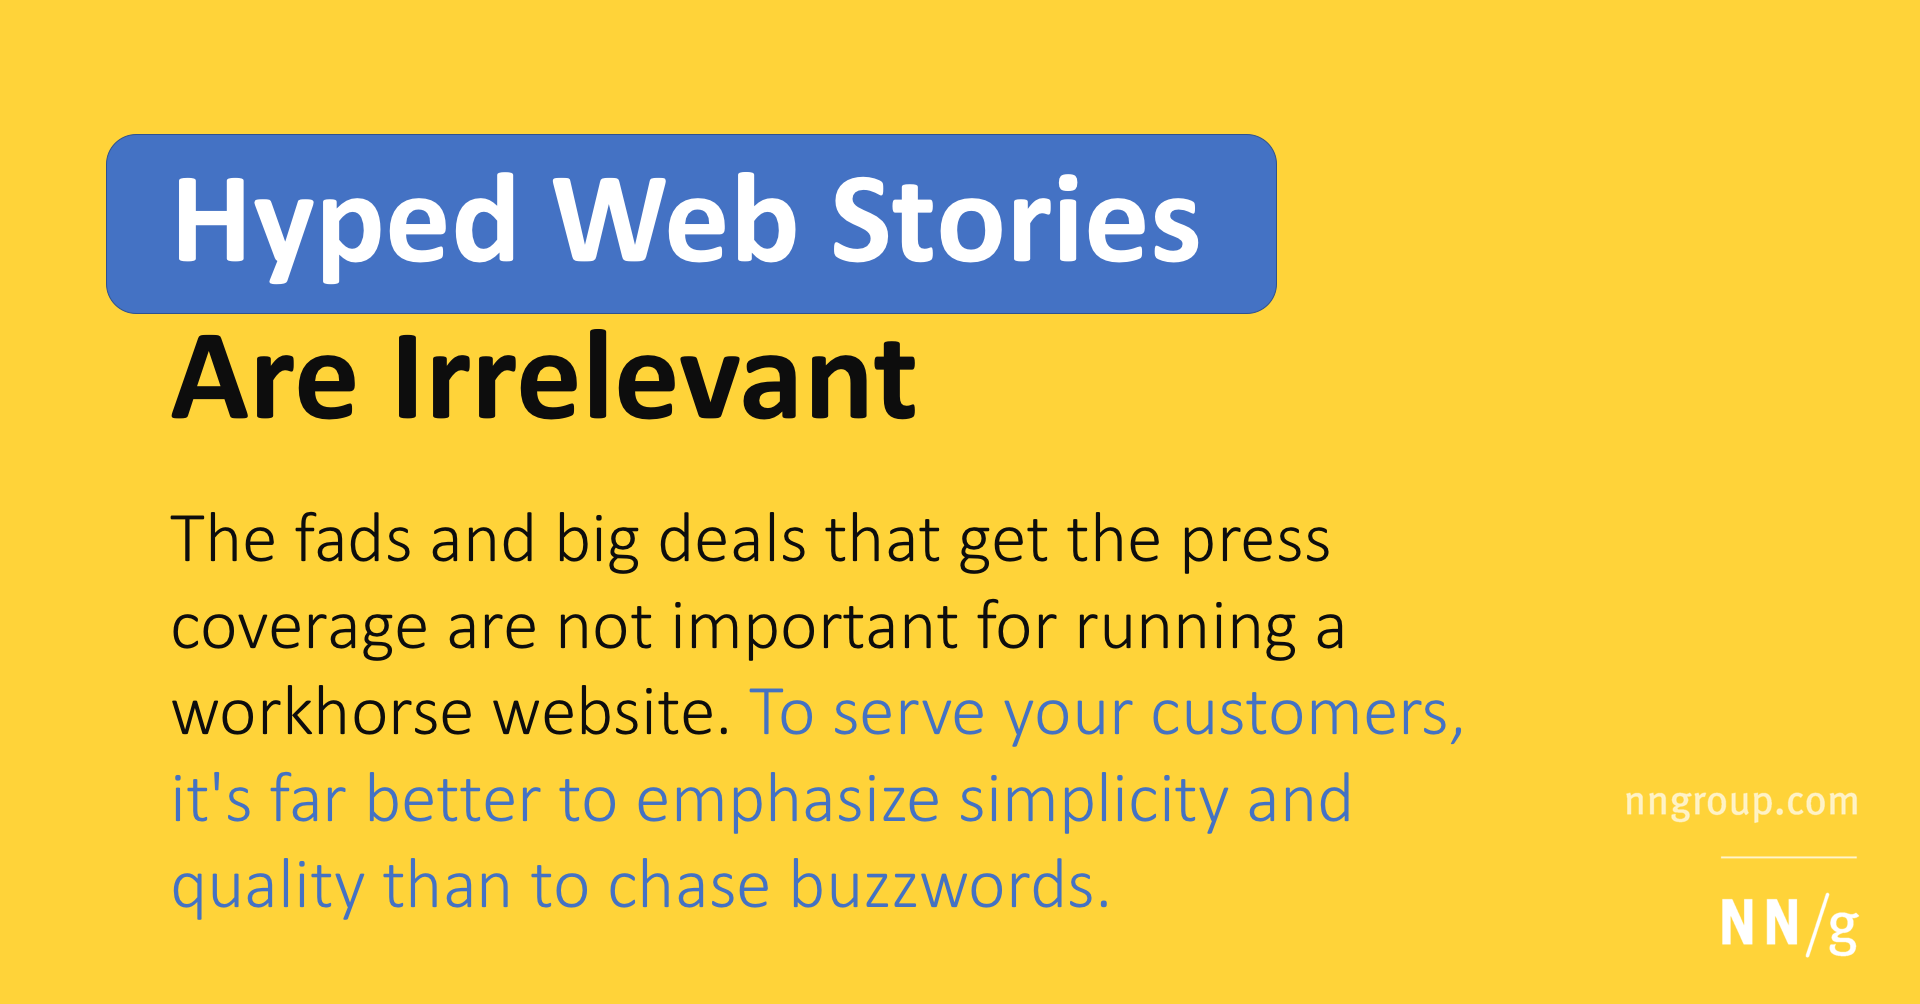 Hyped Web Stories Are Irrelevant